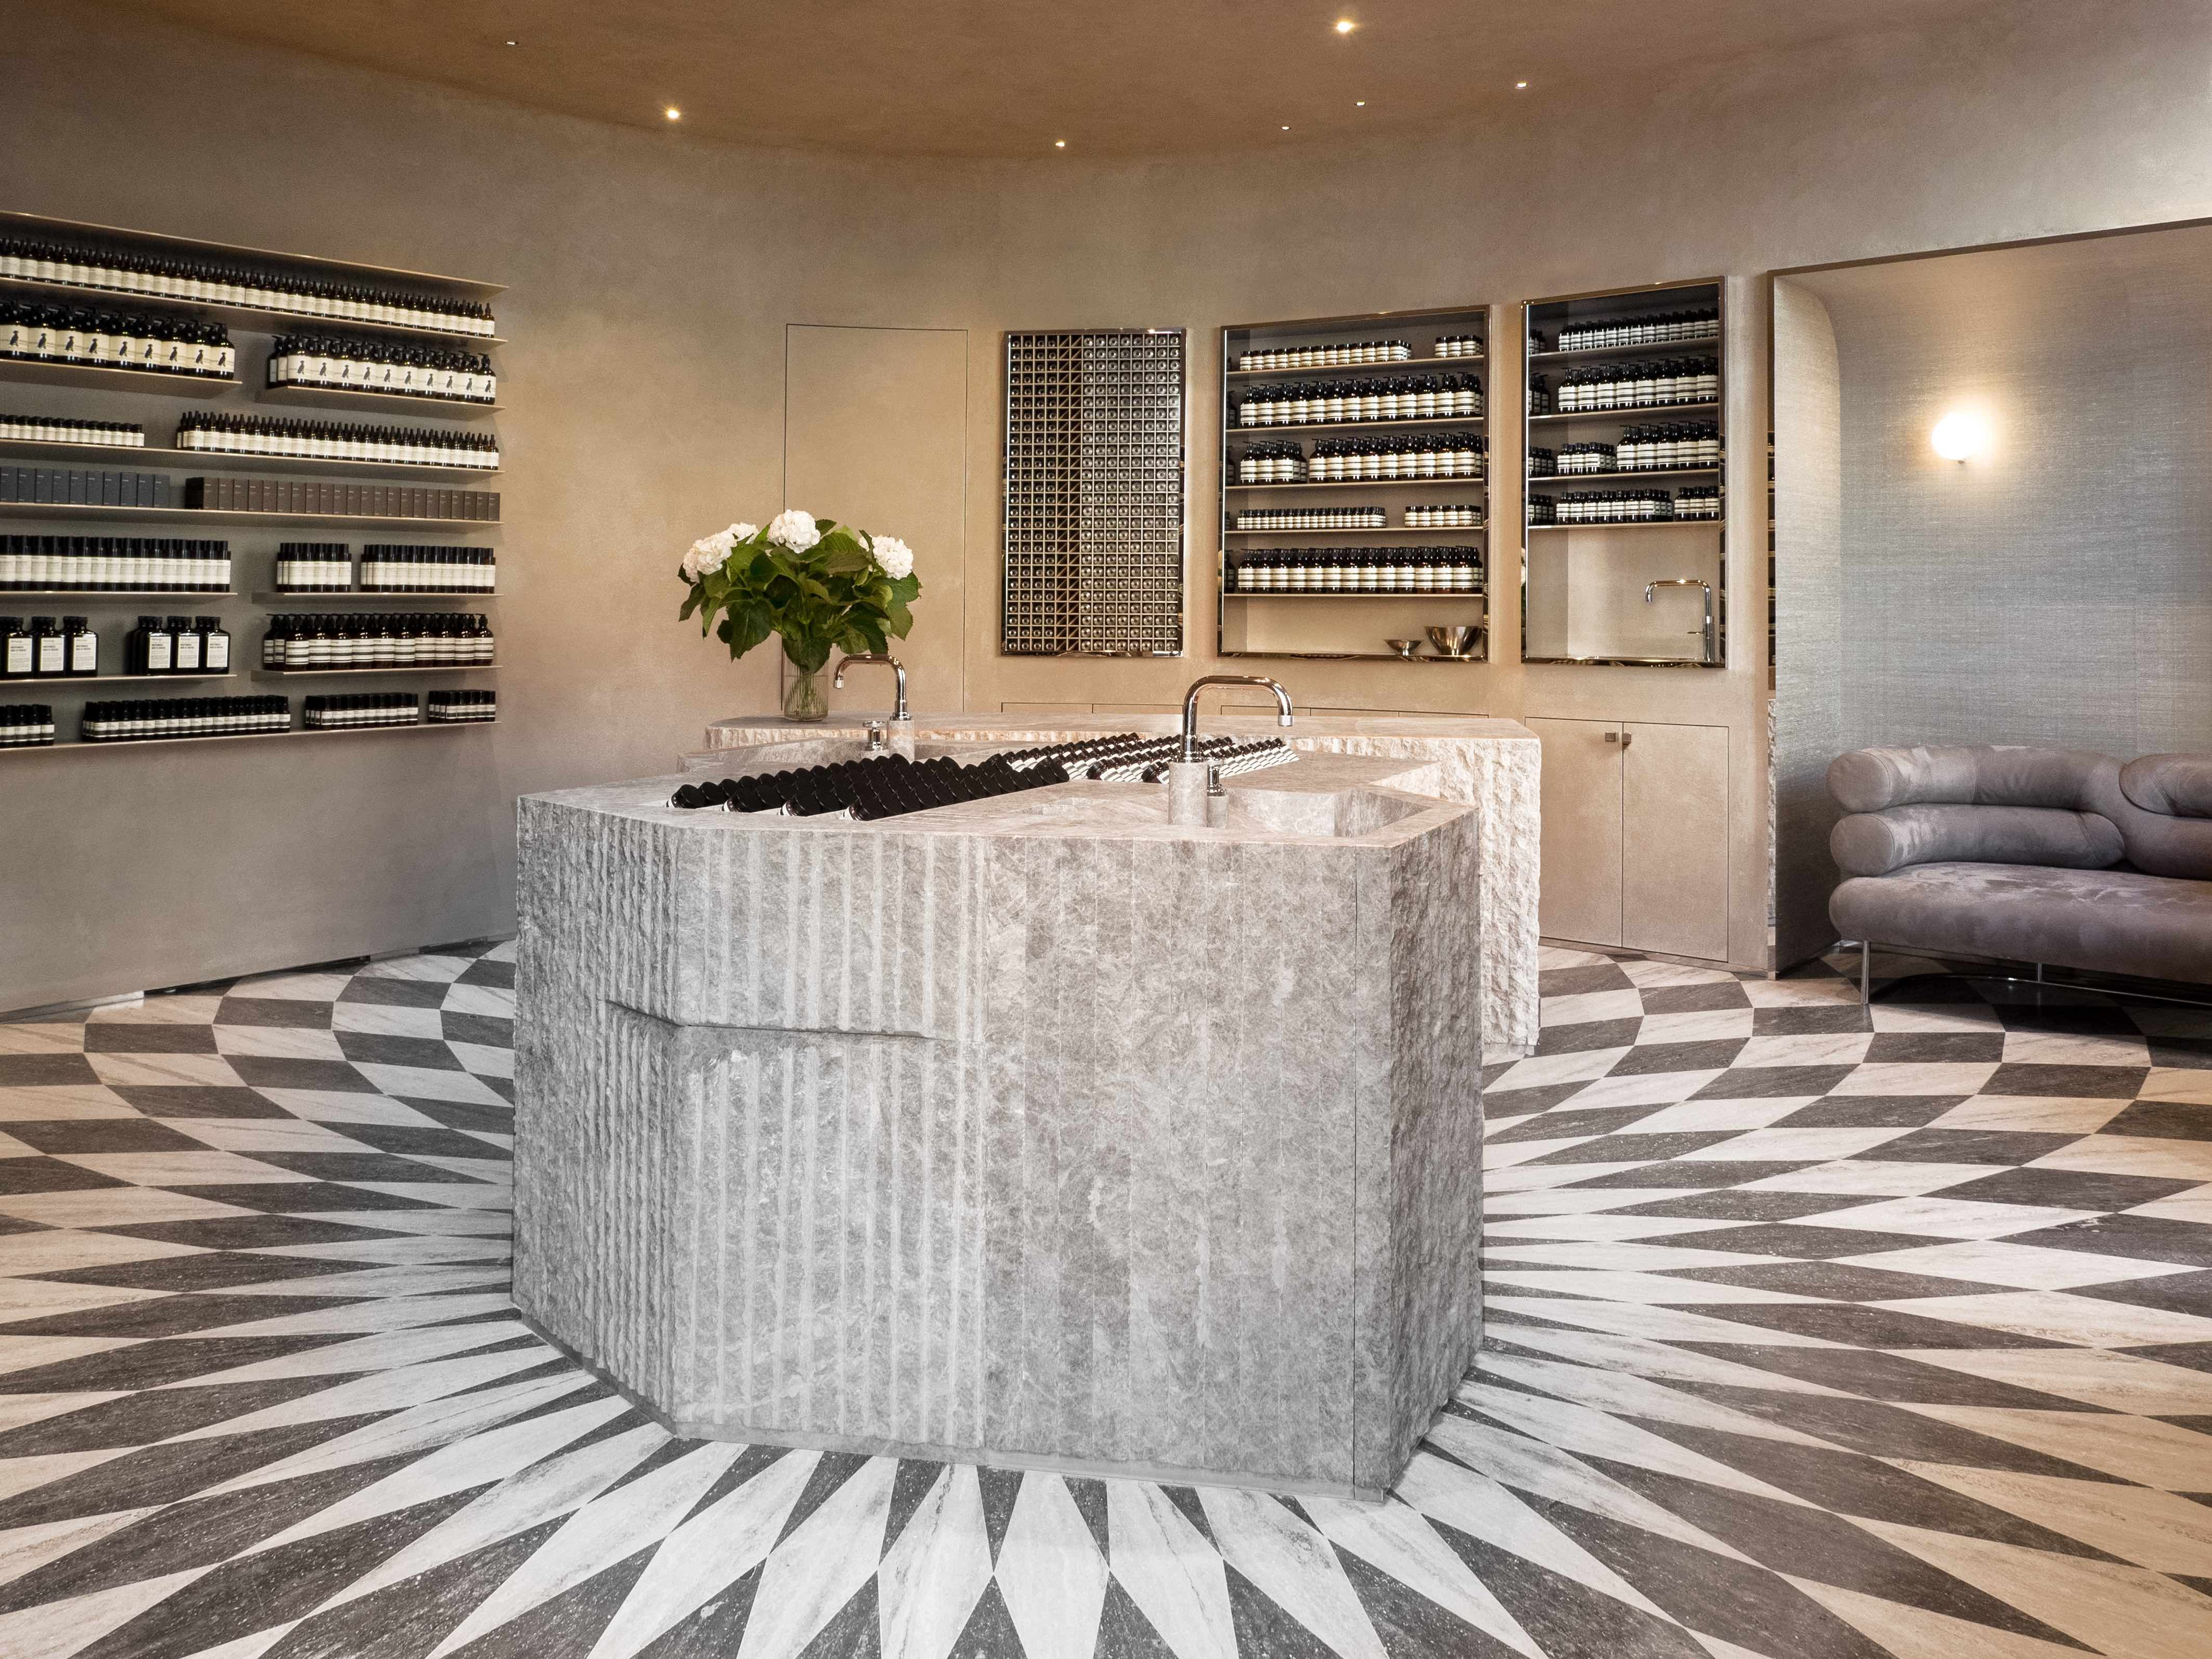 Aesop opens in London's Piccadilly Arcade with interiors by Luca Guadagnino